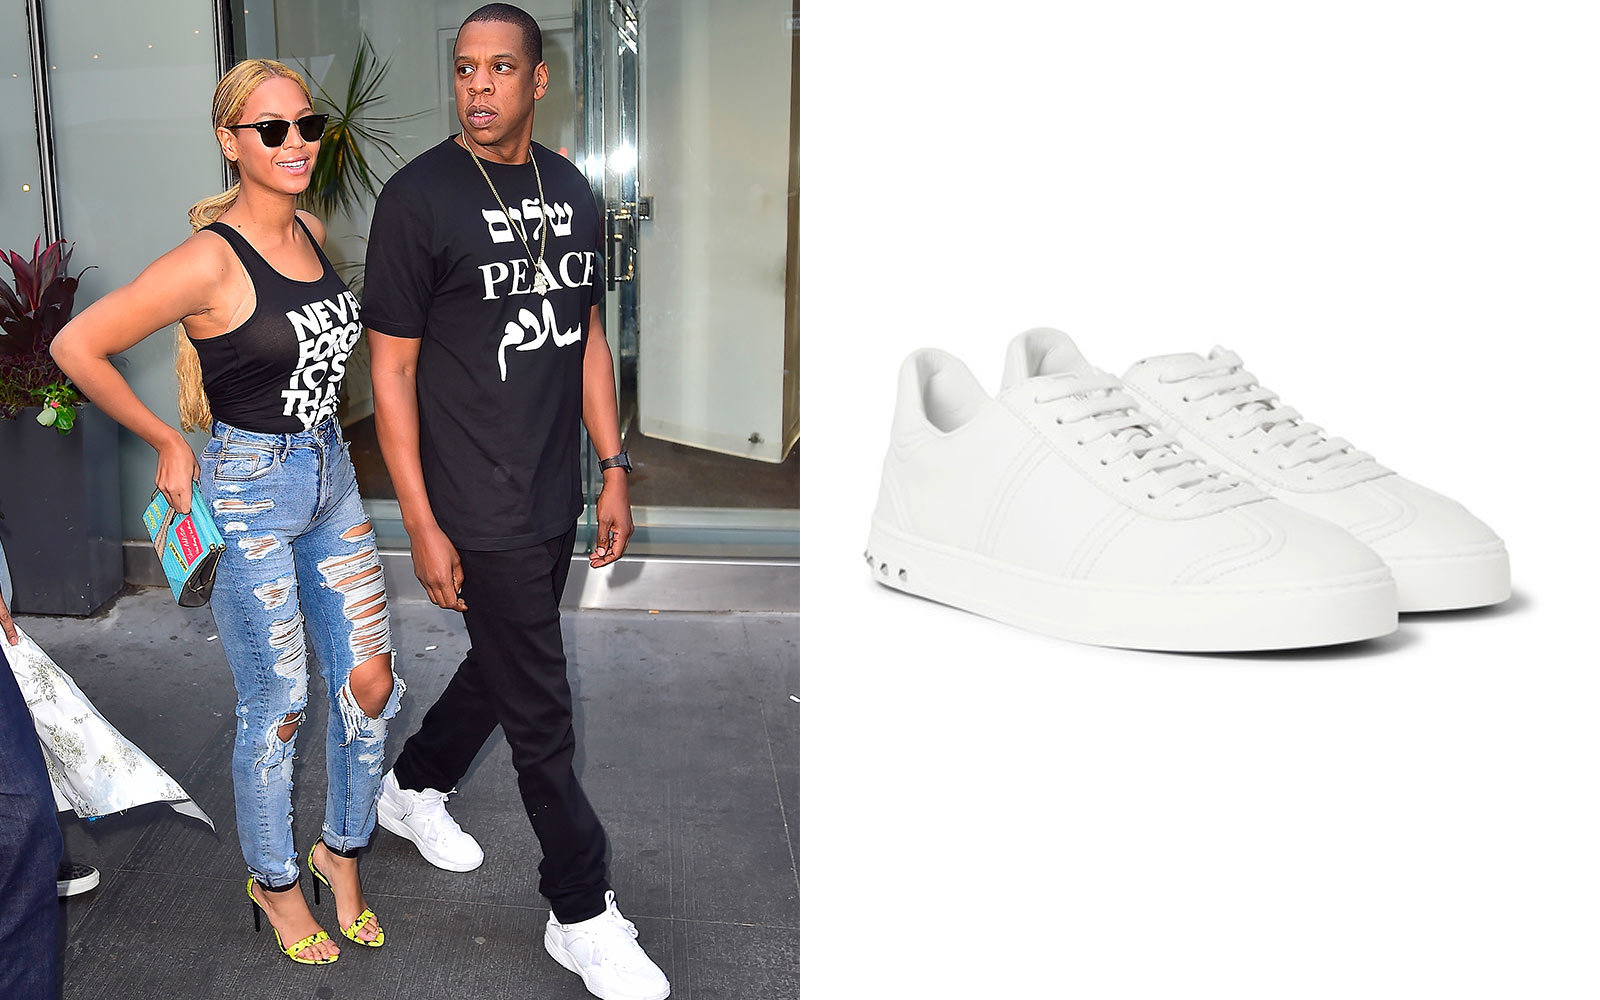 finest selection 2c9b9 8b63a 14 Sneakers Celebrities Love to Wear on the Go   Travel + Leisure